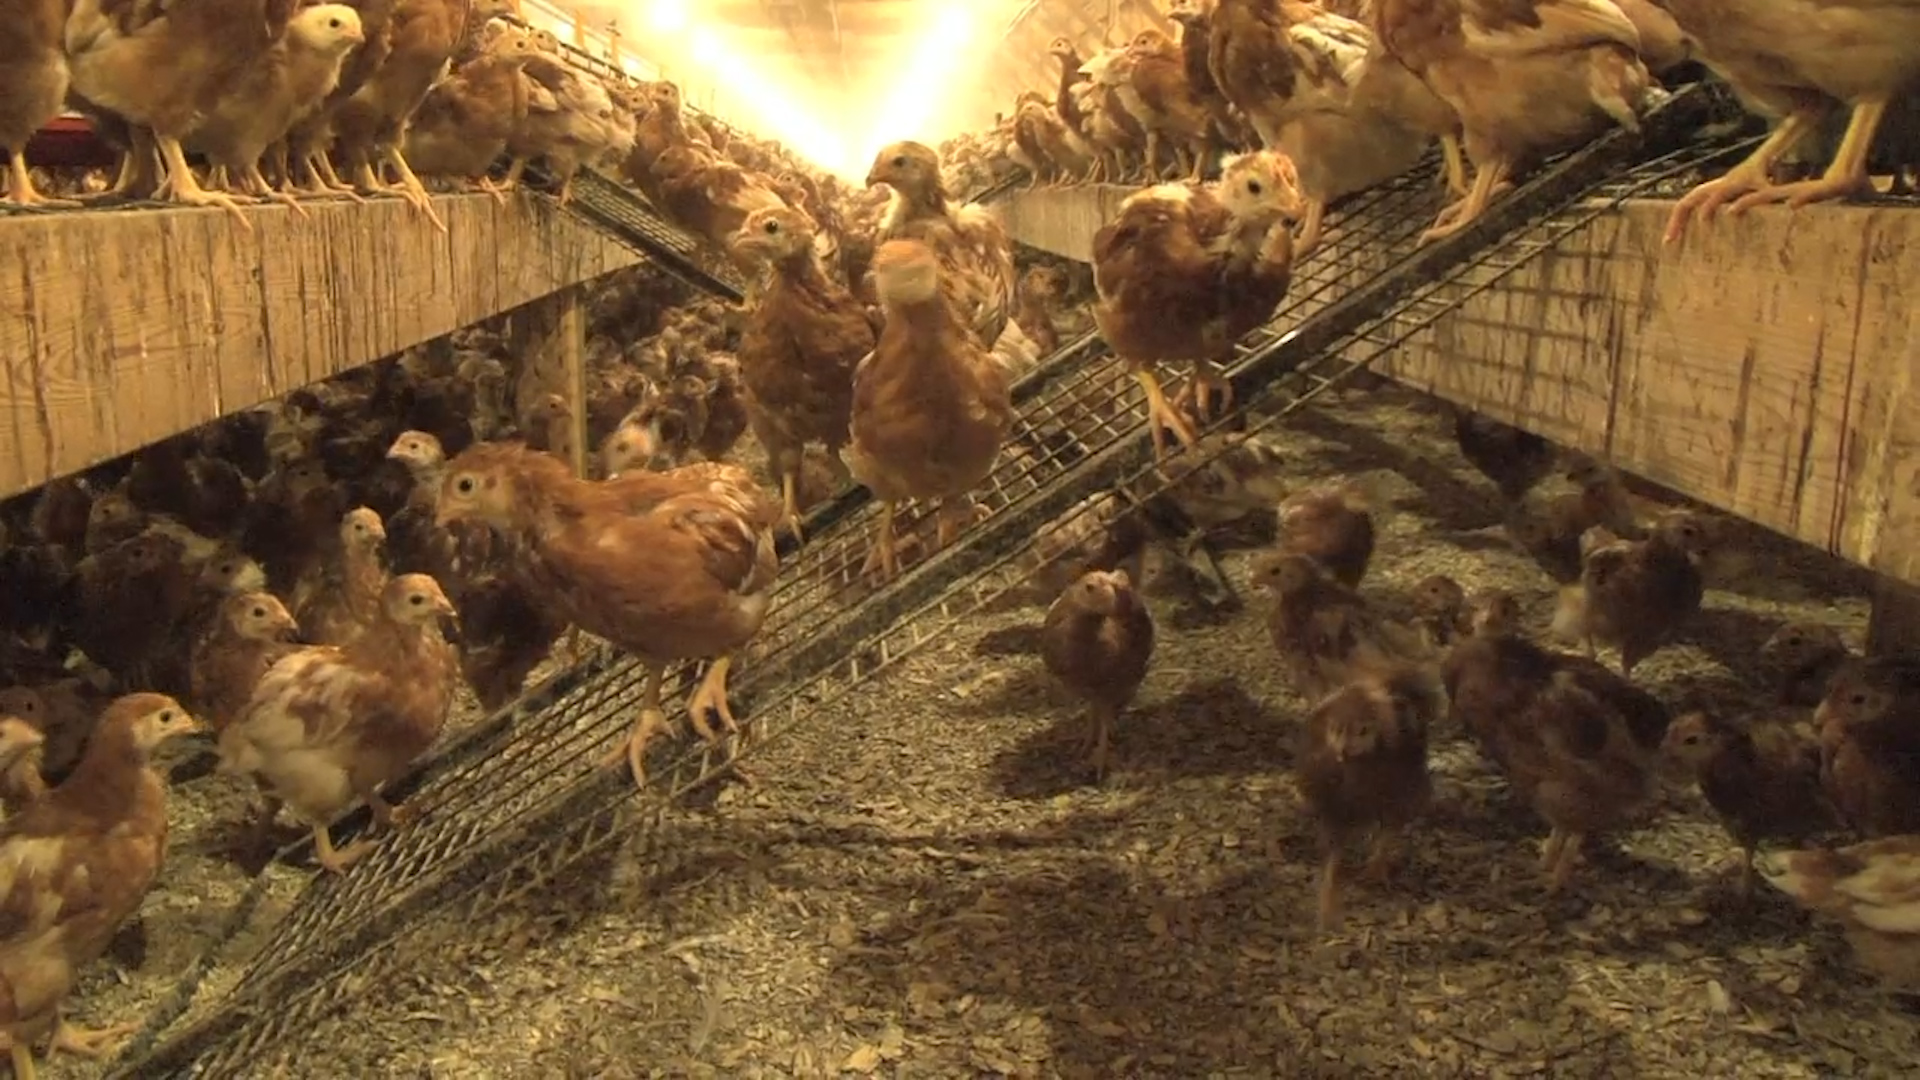 Cage-free Egg Production